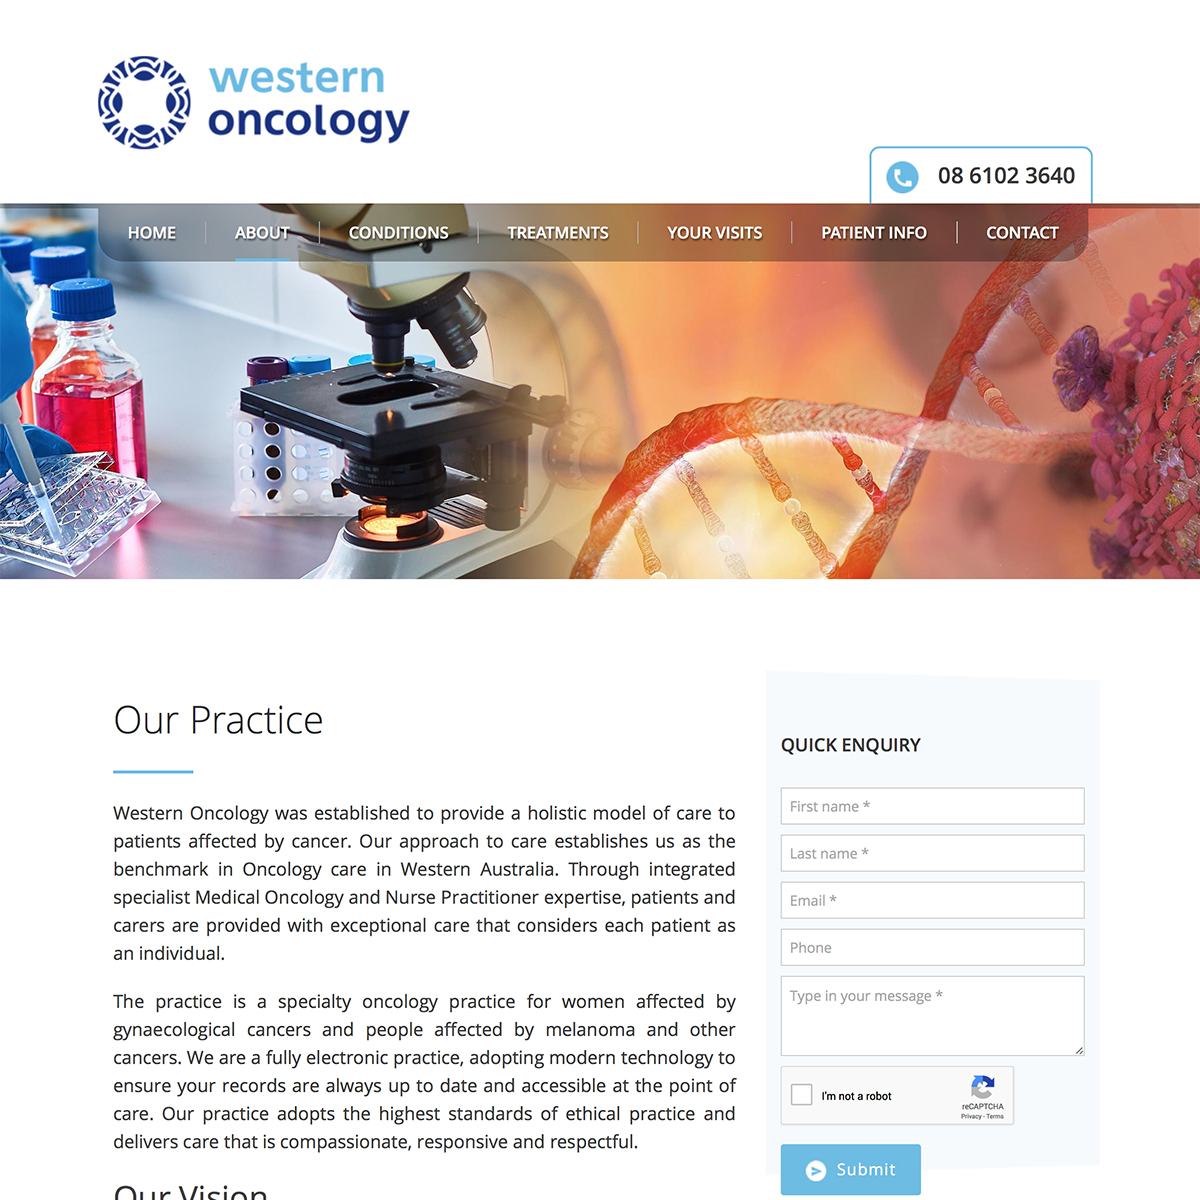 Western Oncology - Our Practice